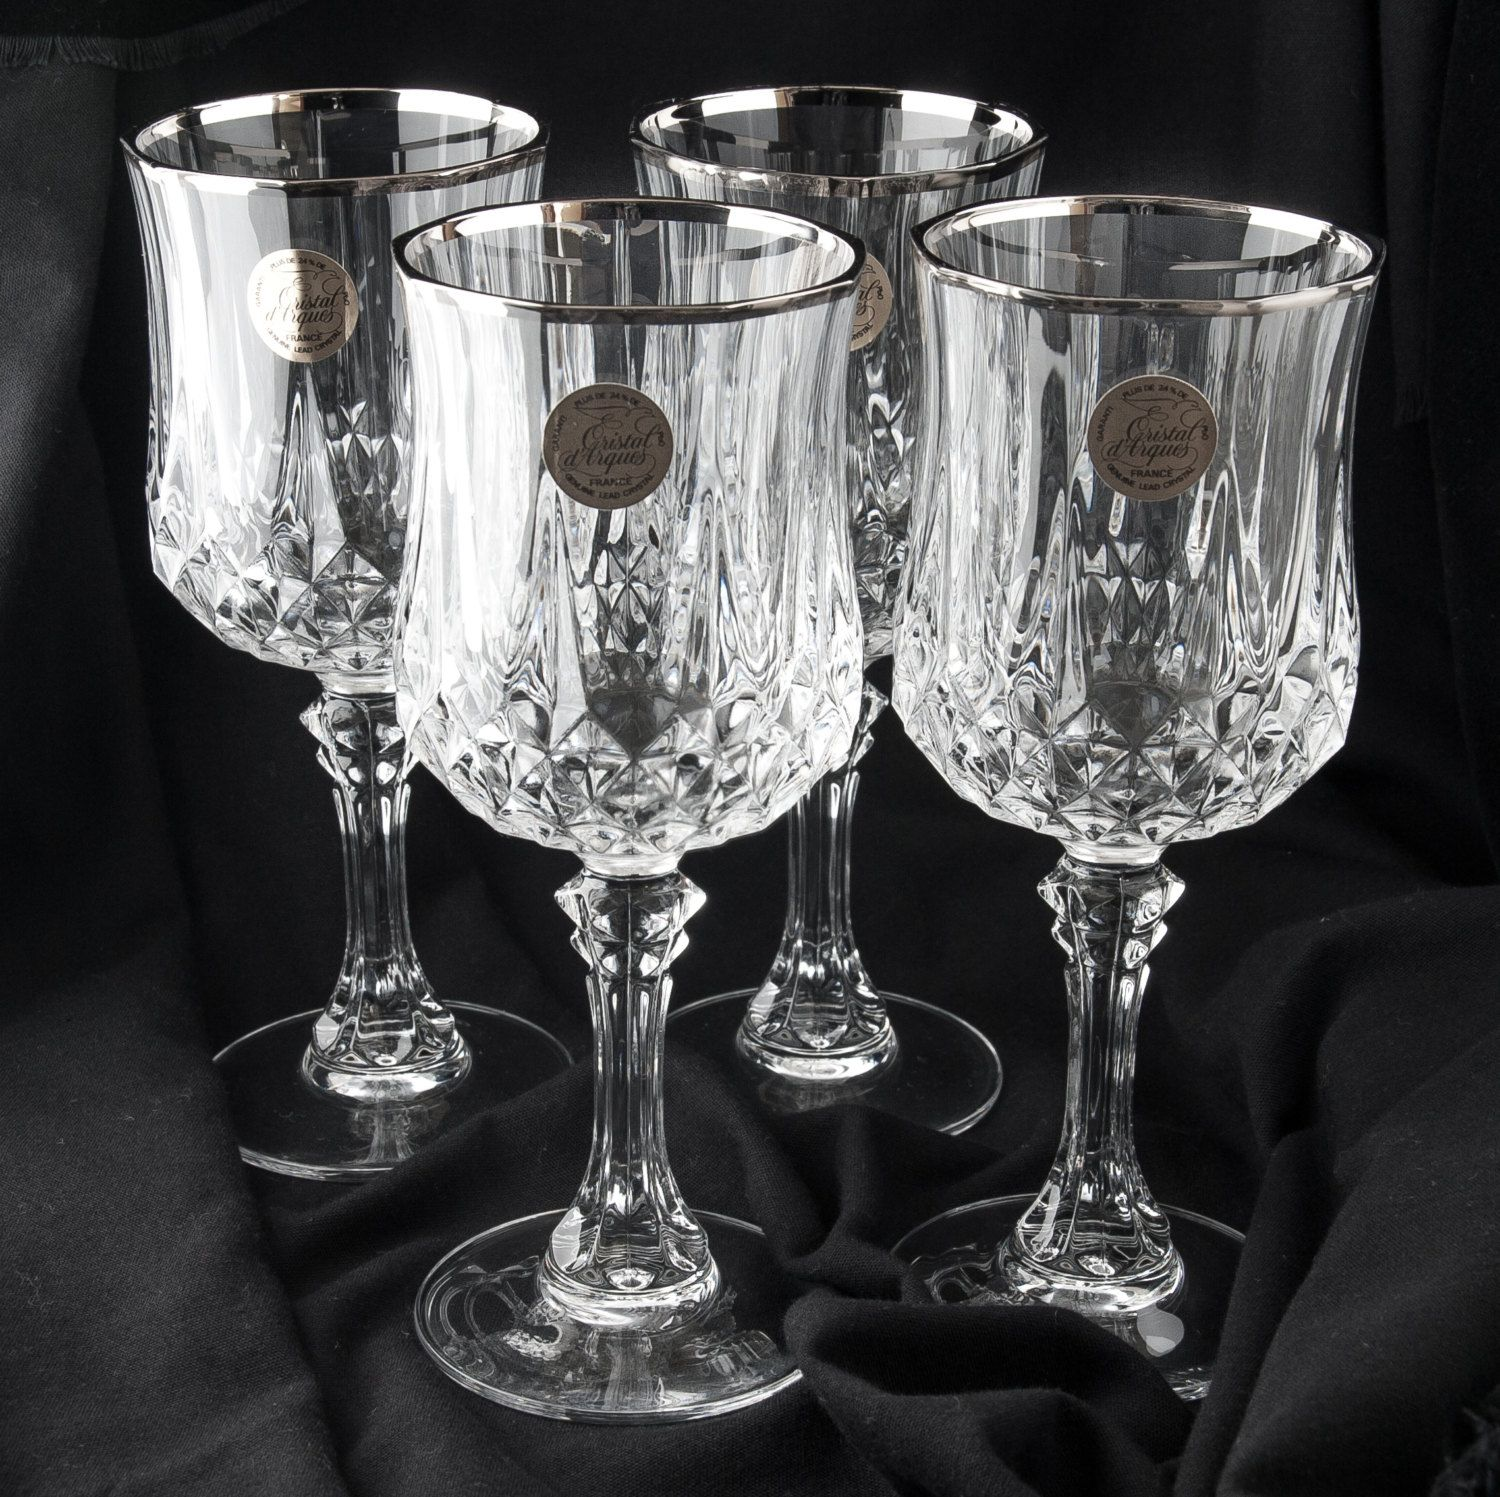 Crystal Stemware Wine Glasses Crystal Water Wine Goblets Cristal D 39arques France